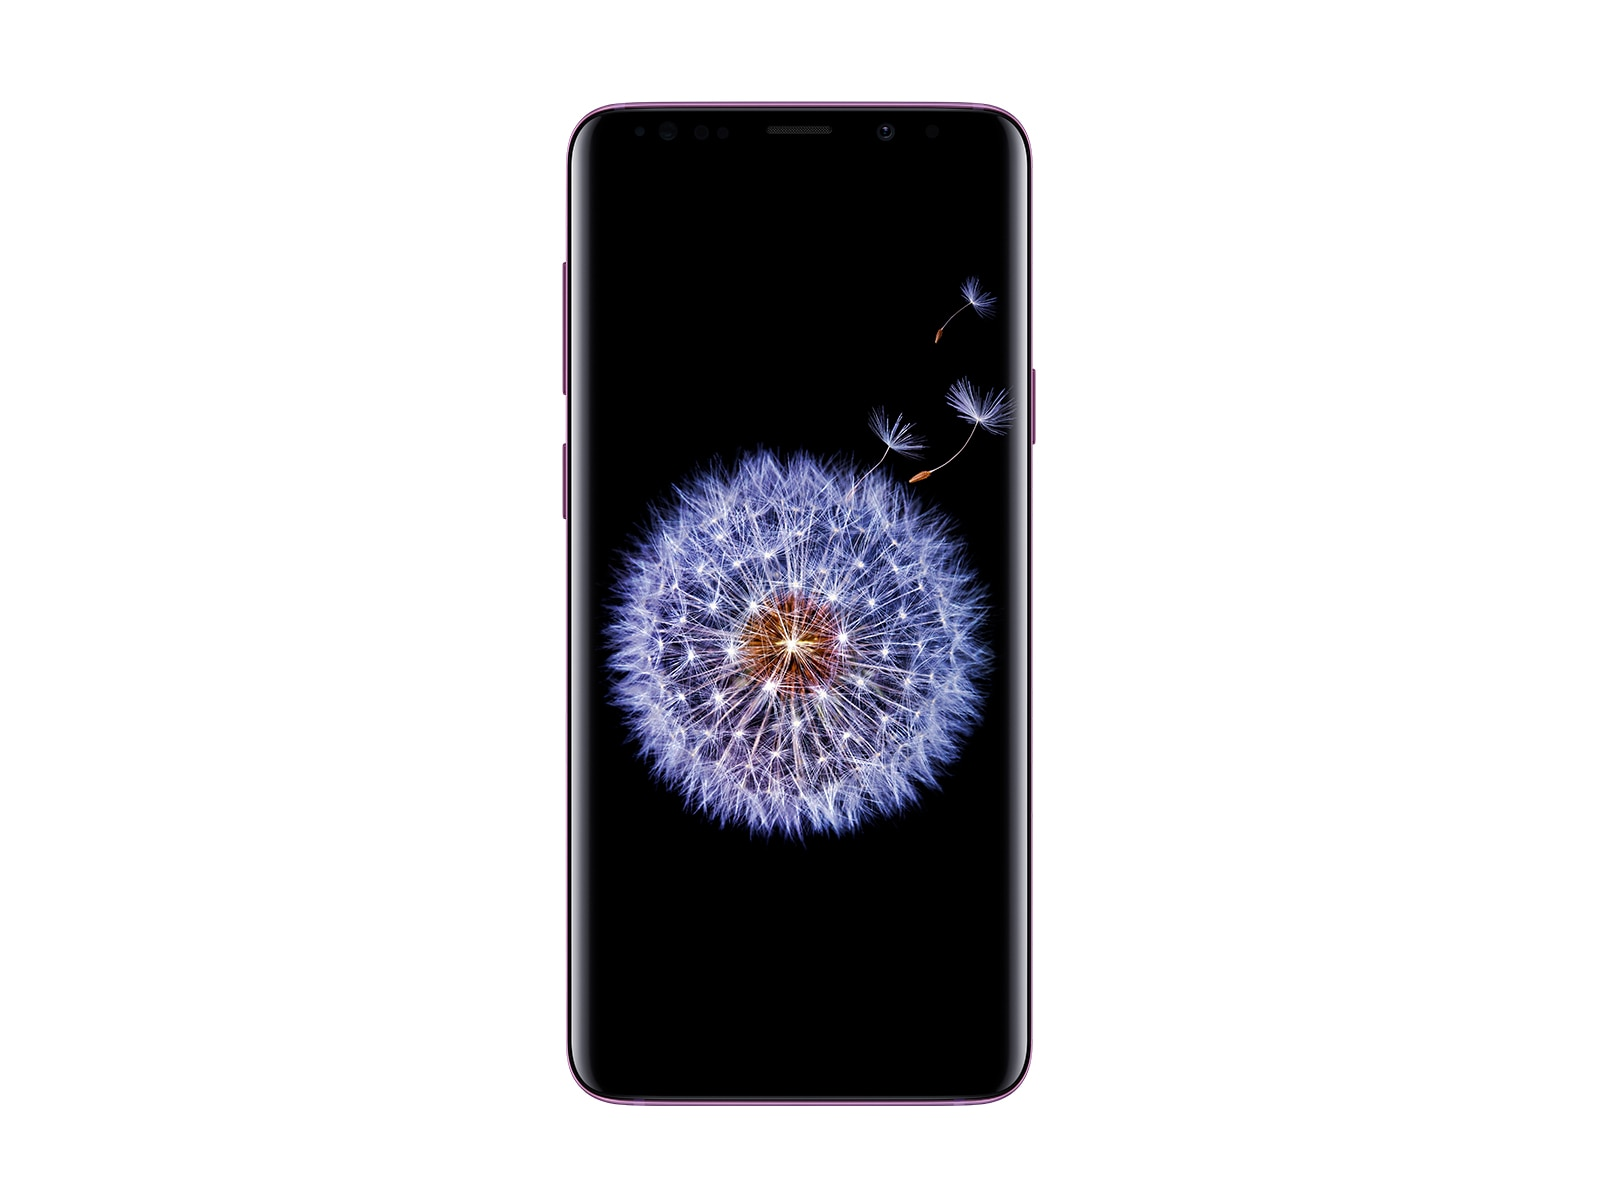 Thumbnail image of Galaxy S9+ 64GB (Xfinity Mobile)